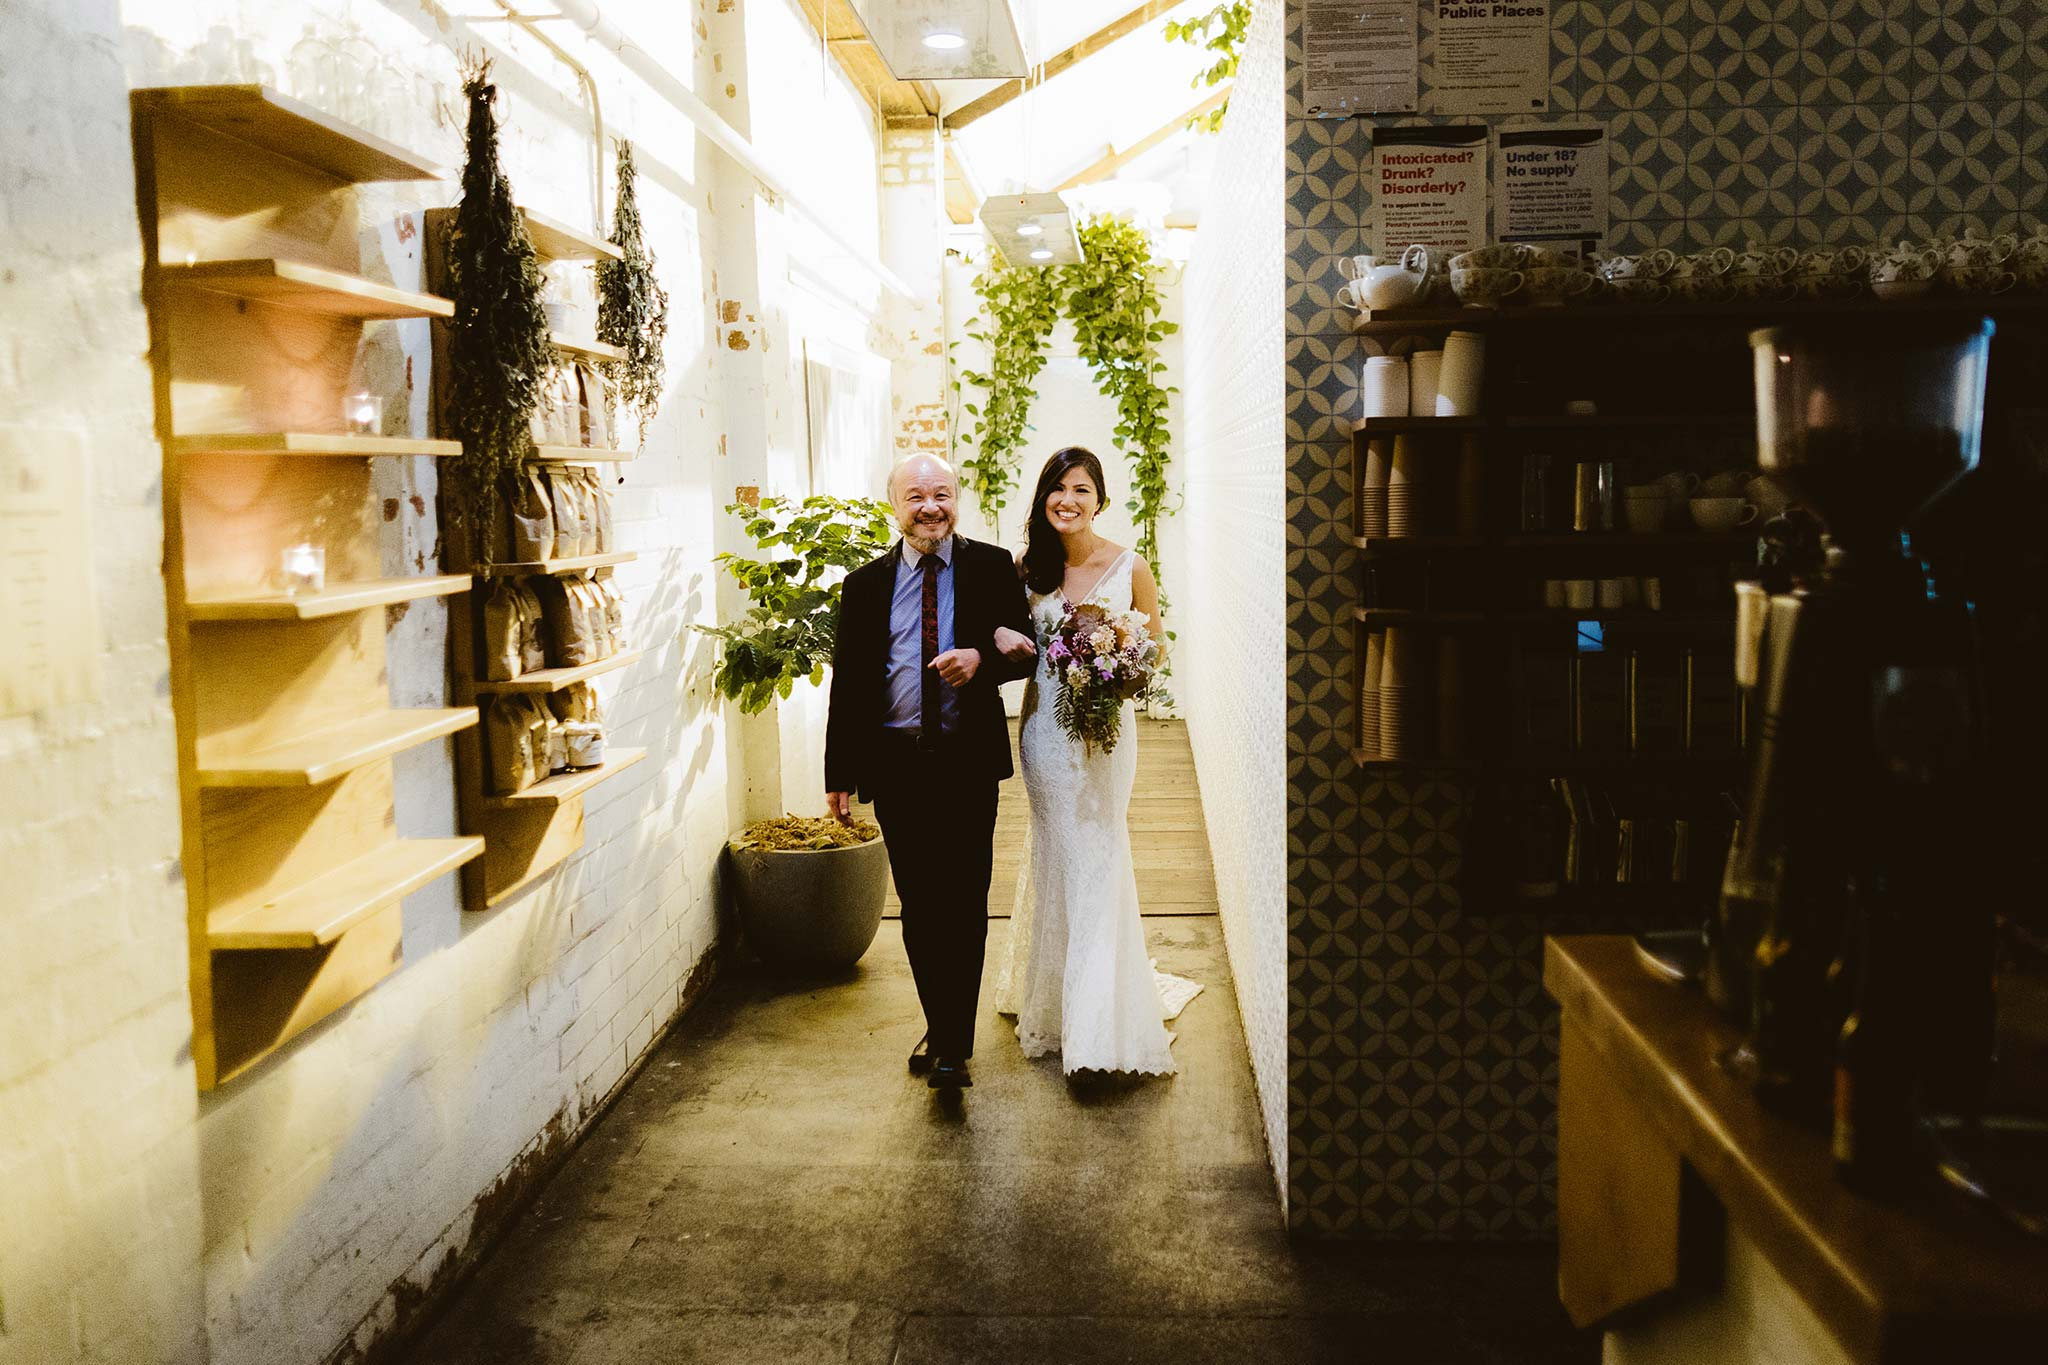 Melbourne-North-Carlton-East-Elevation-Surprise-Winter-warehouse-Wedding-photographer-bridal-entrance